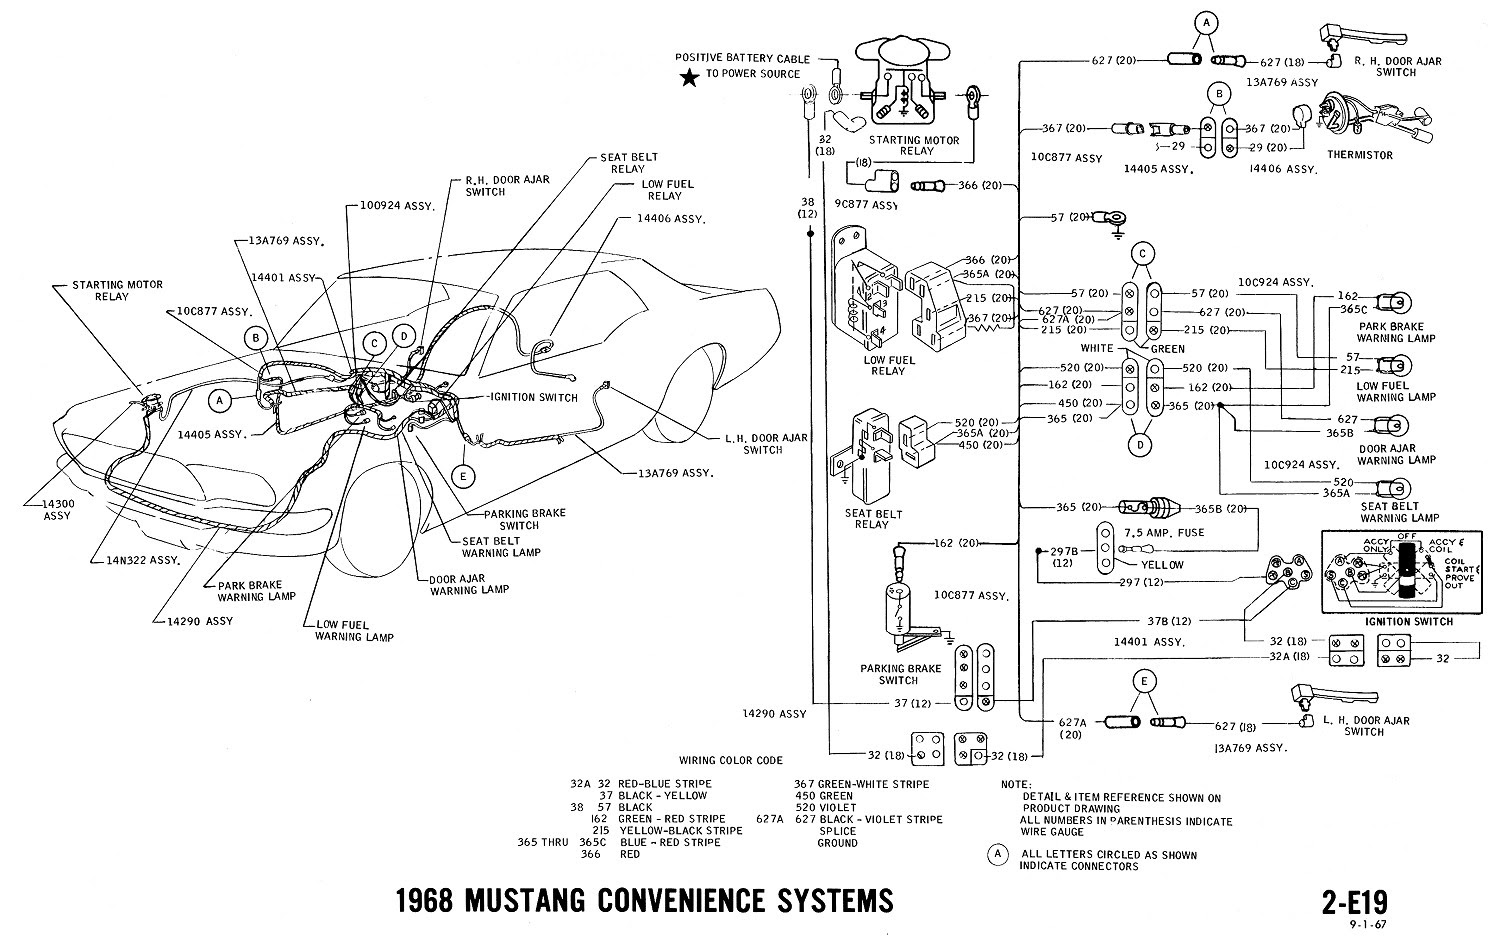 1967 Mustang Gas Gauge Wiring Diagram Wiring Diagram Central1 Central1 Bujinkan It